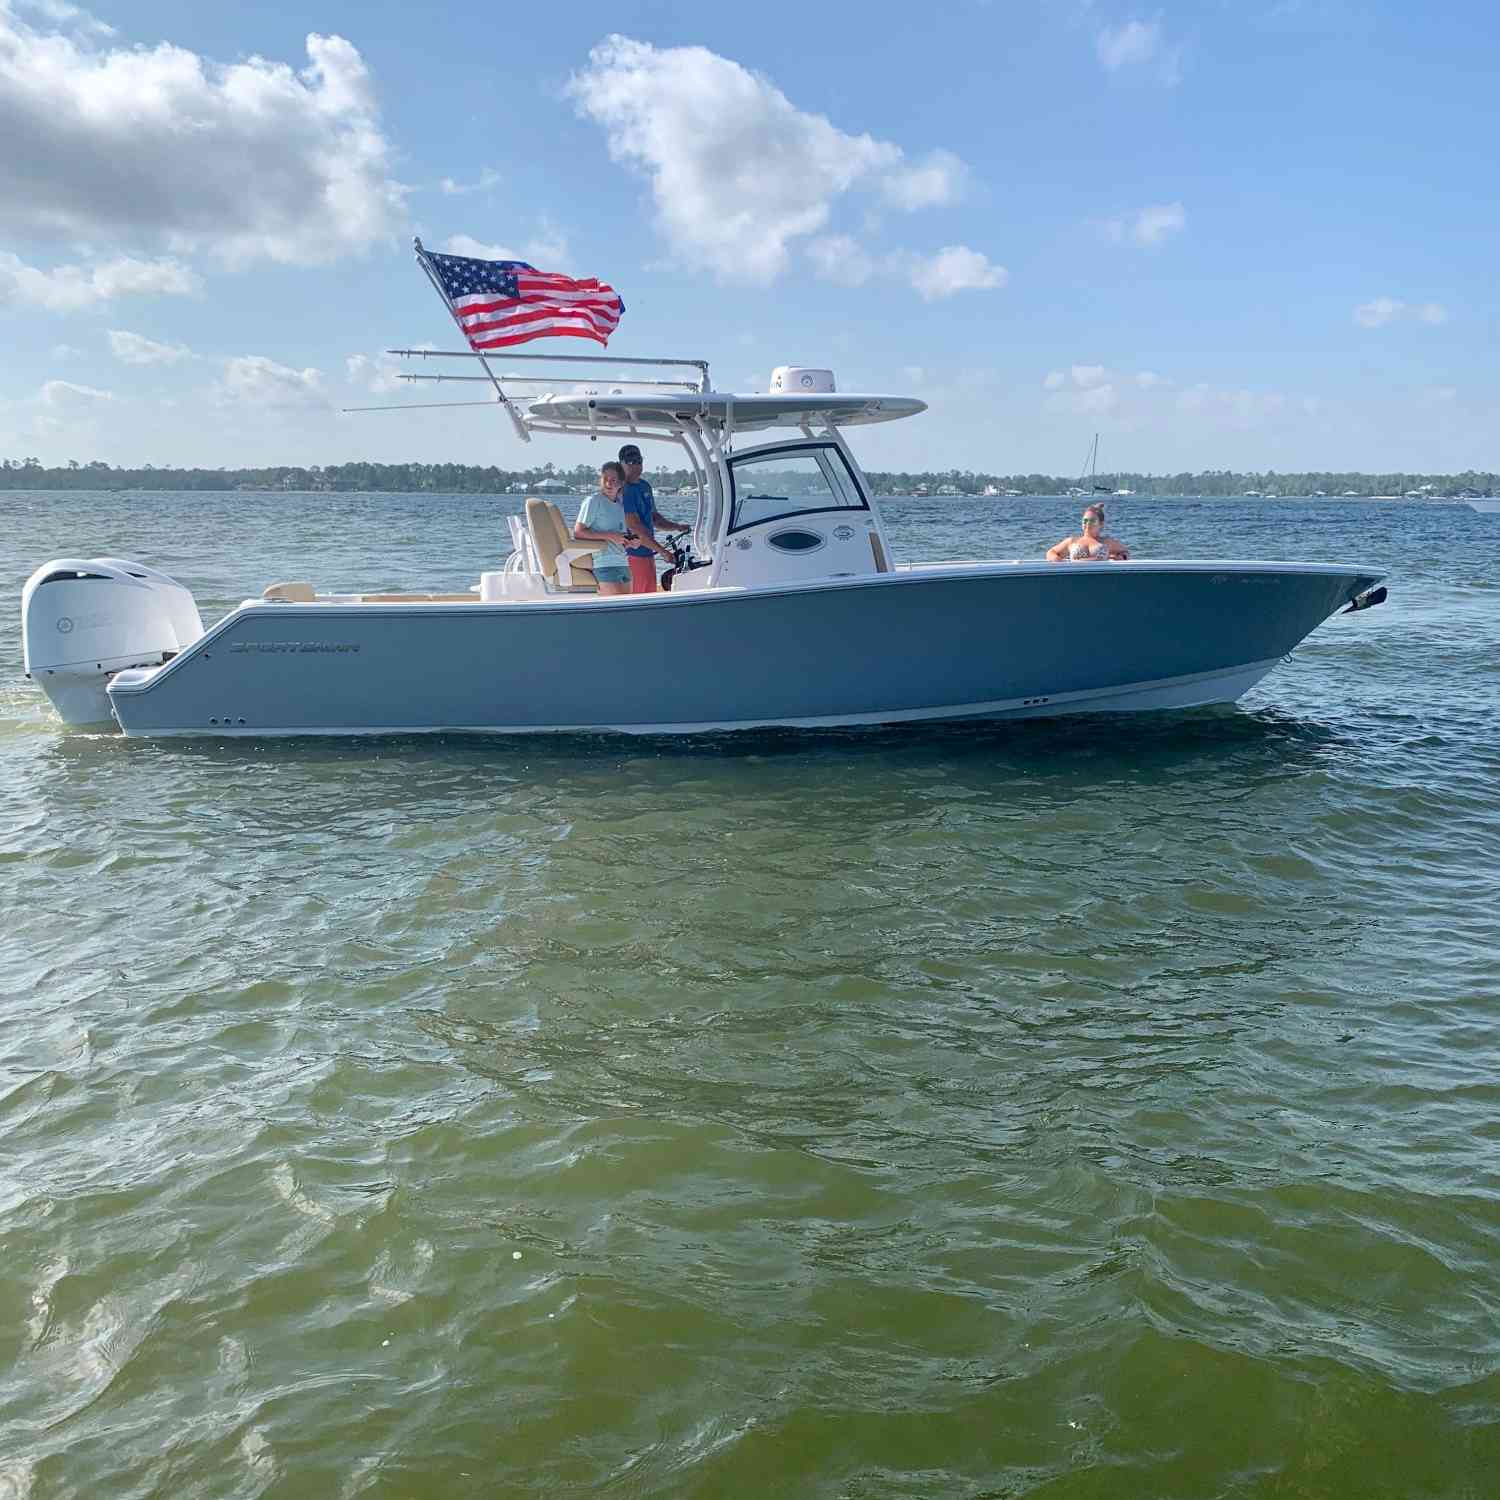 Title: Flying ole glory - On board their Sportsman Open 312 Center Console - Location: Orange Beach Al. Participating in the Photo Contest #SportsmanMay2020